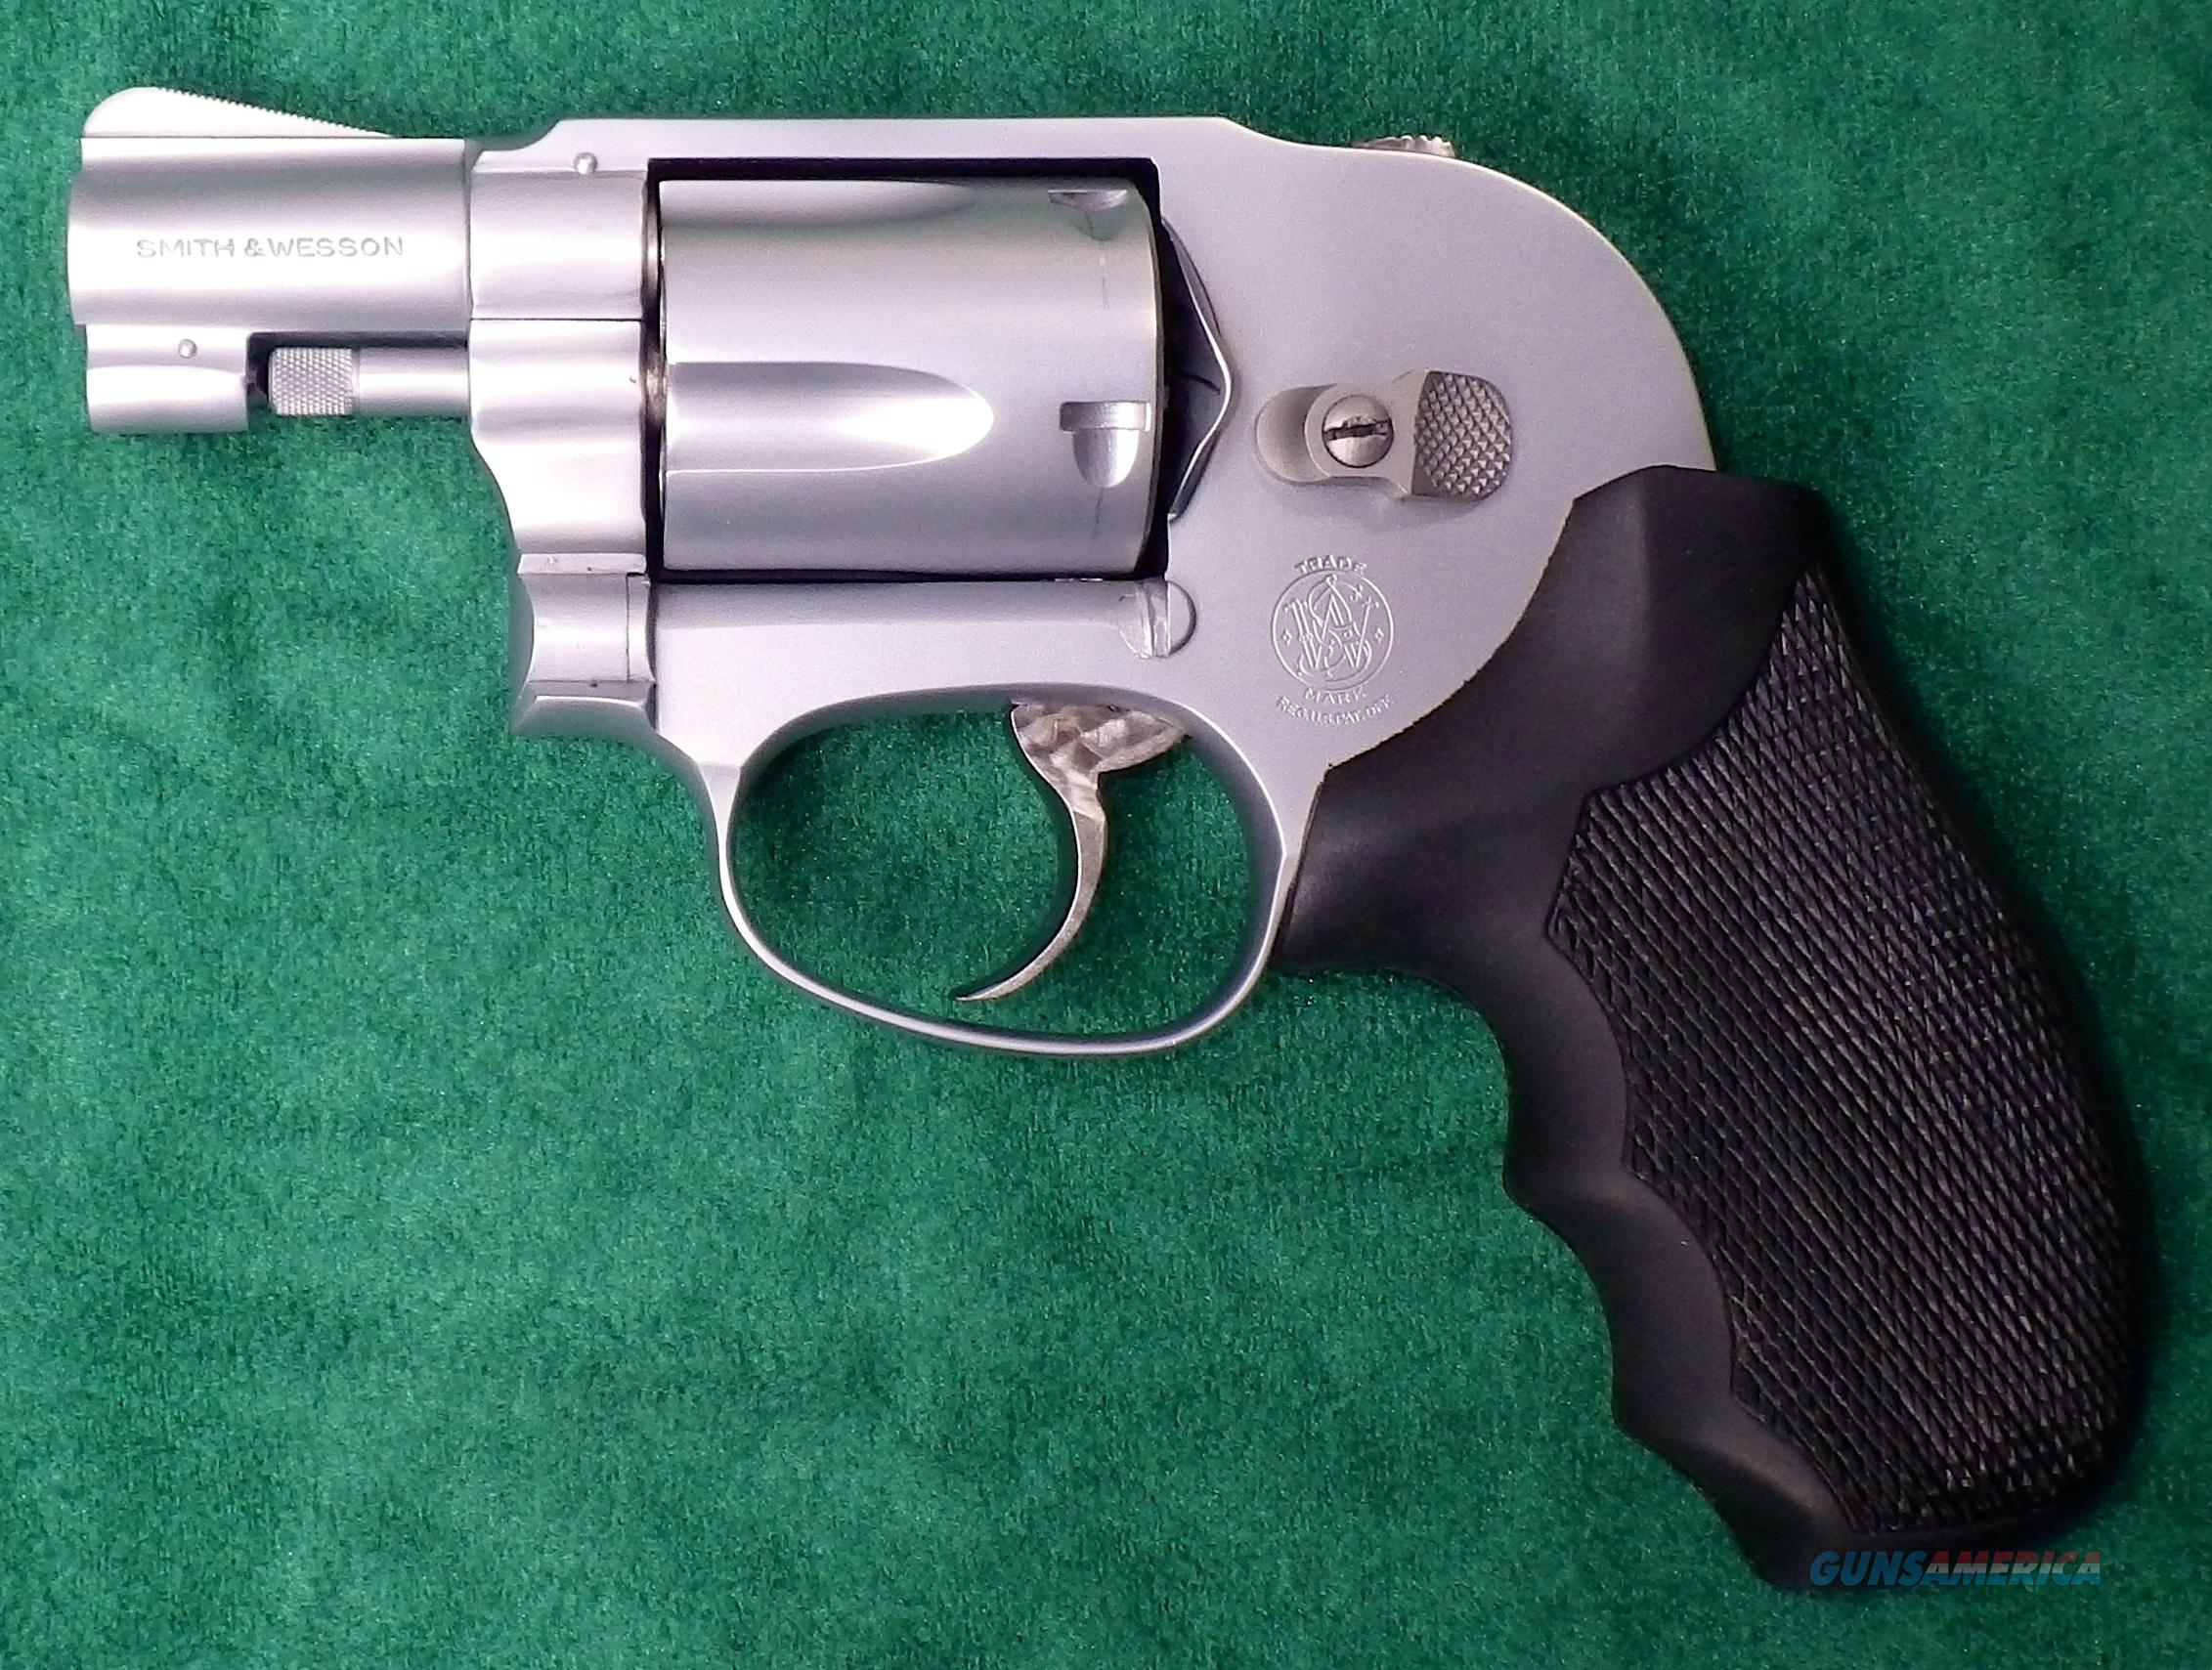 Smith & Wesson Model 49 .38 Special, stainless, shrouded, tuned  Guns > Pistols > Smith & Wesson Revolvers > Pocket Pistols